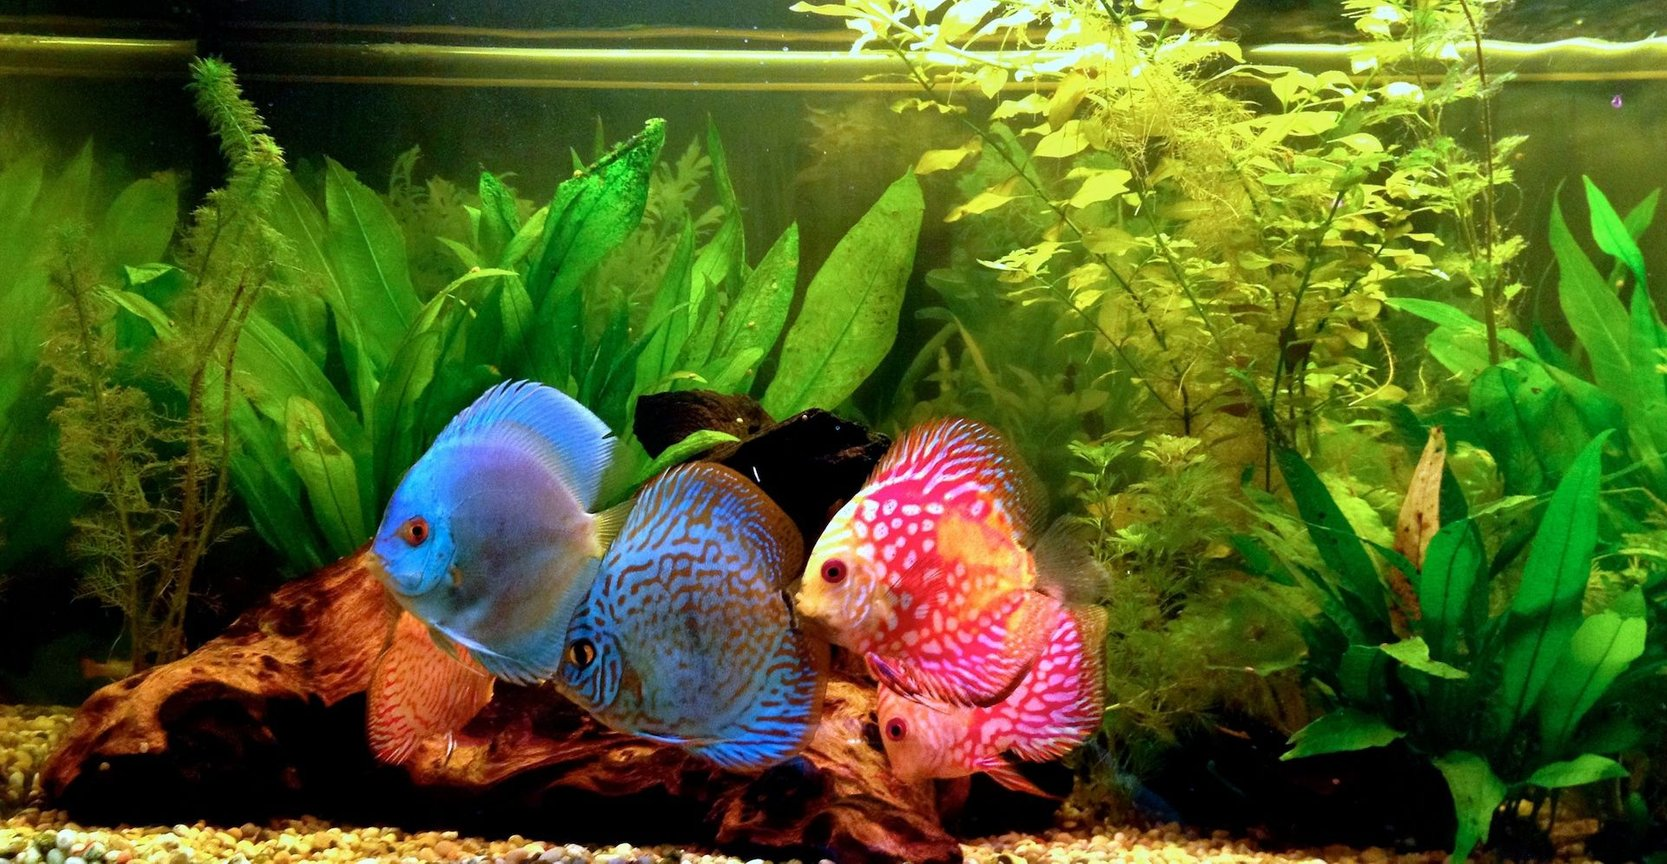 freshwater fish - symphysodon sp. - blue diamond discus stocking in 40 gallons tank - discus